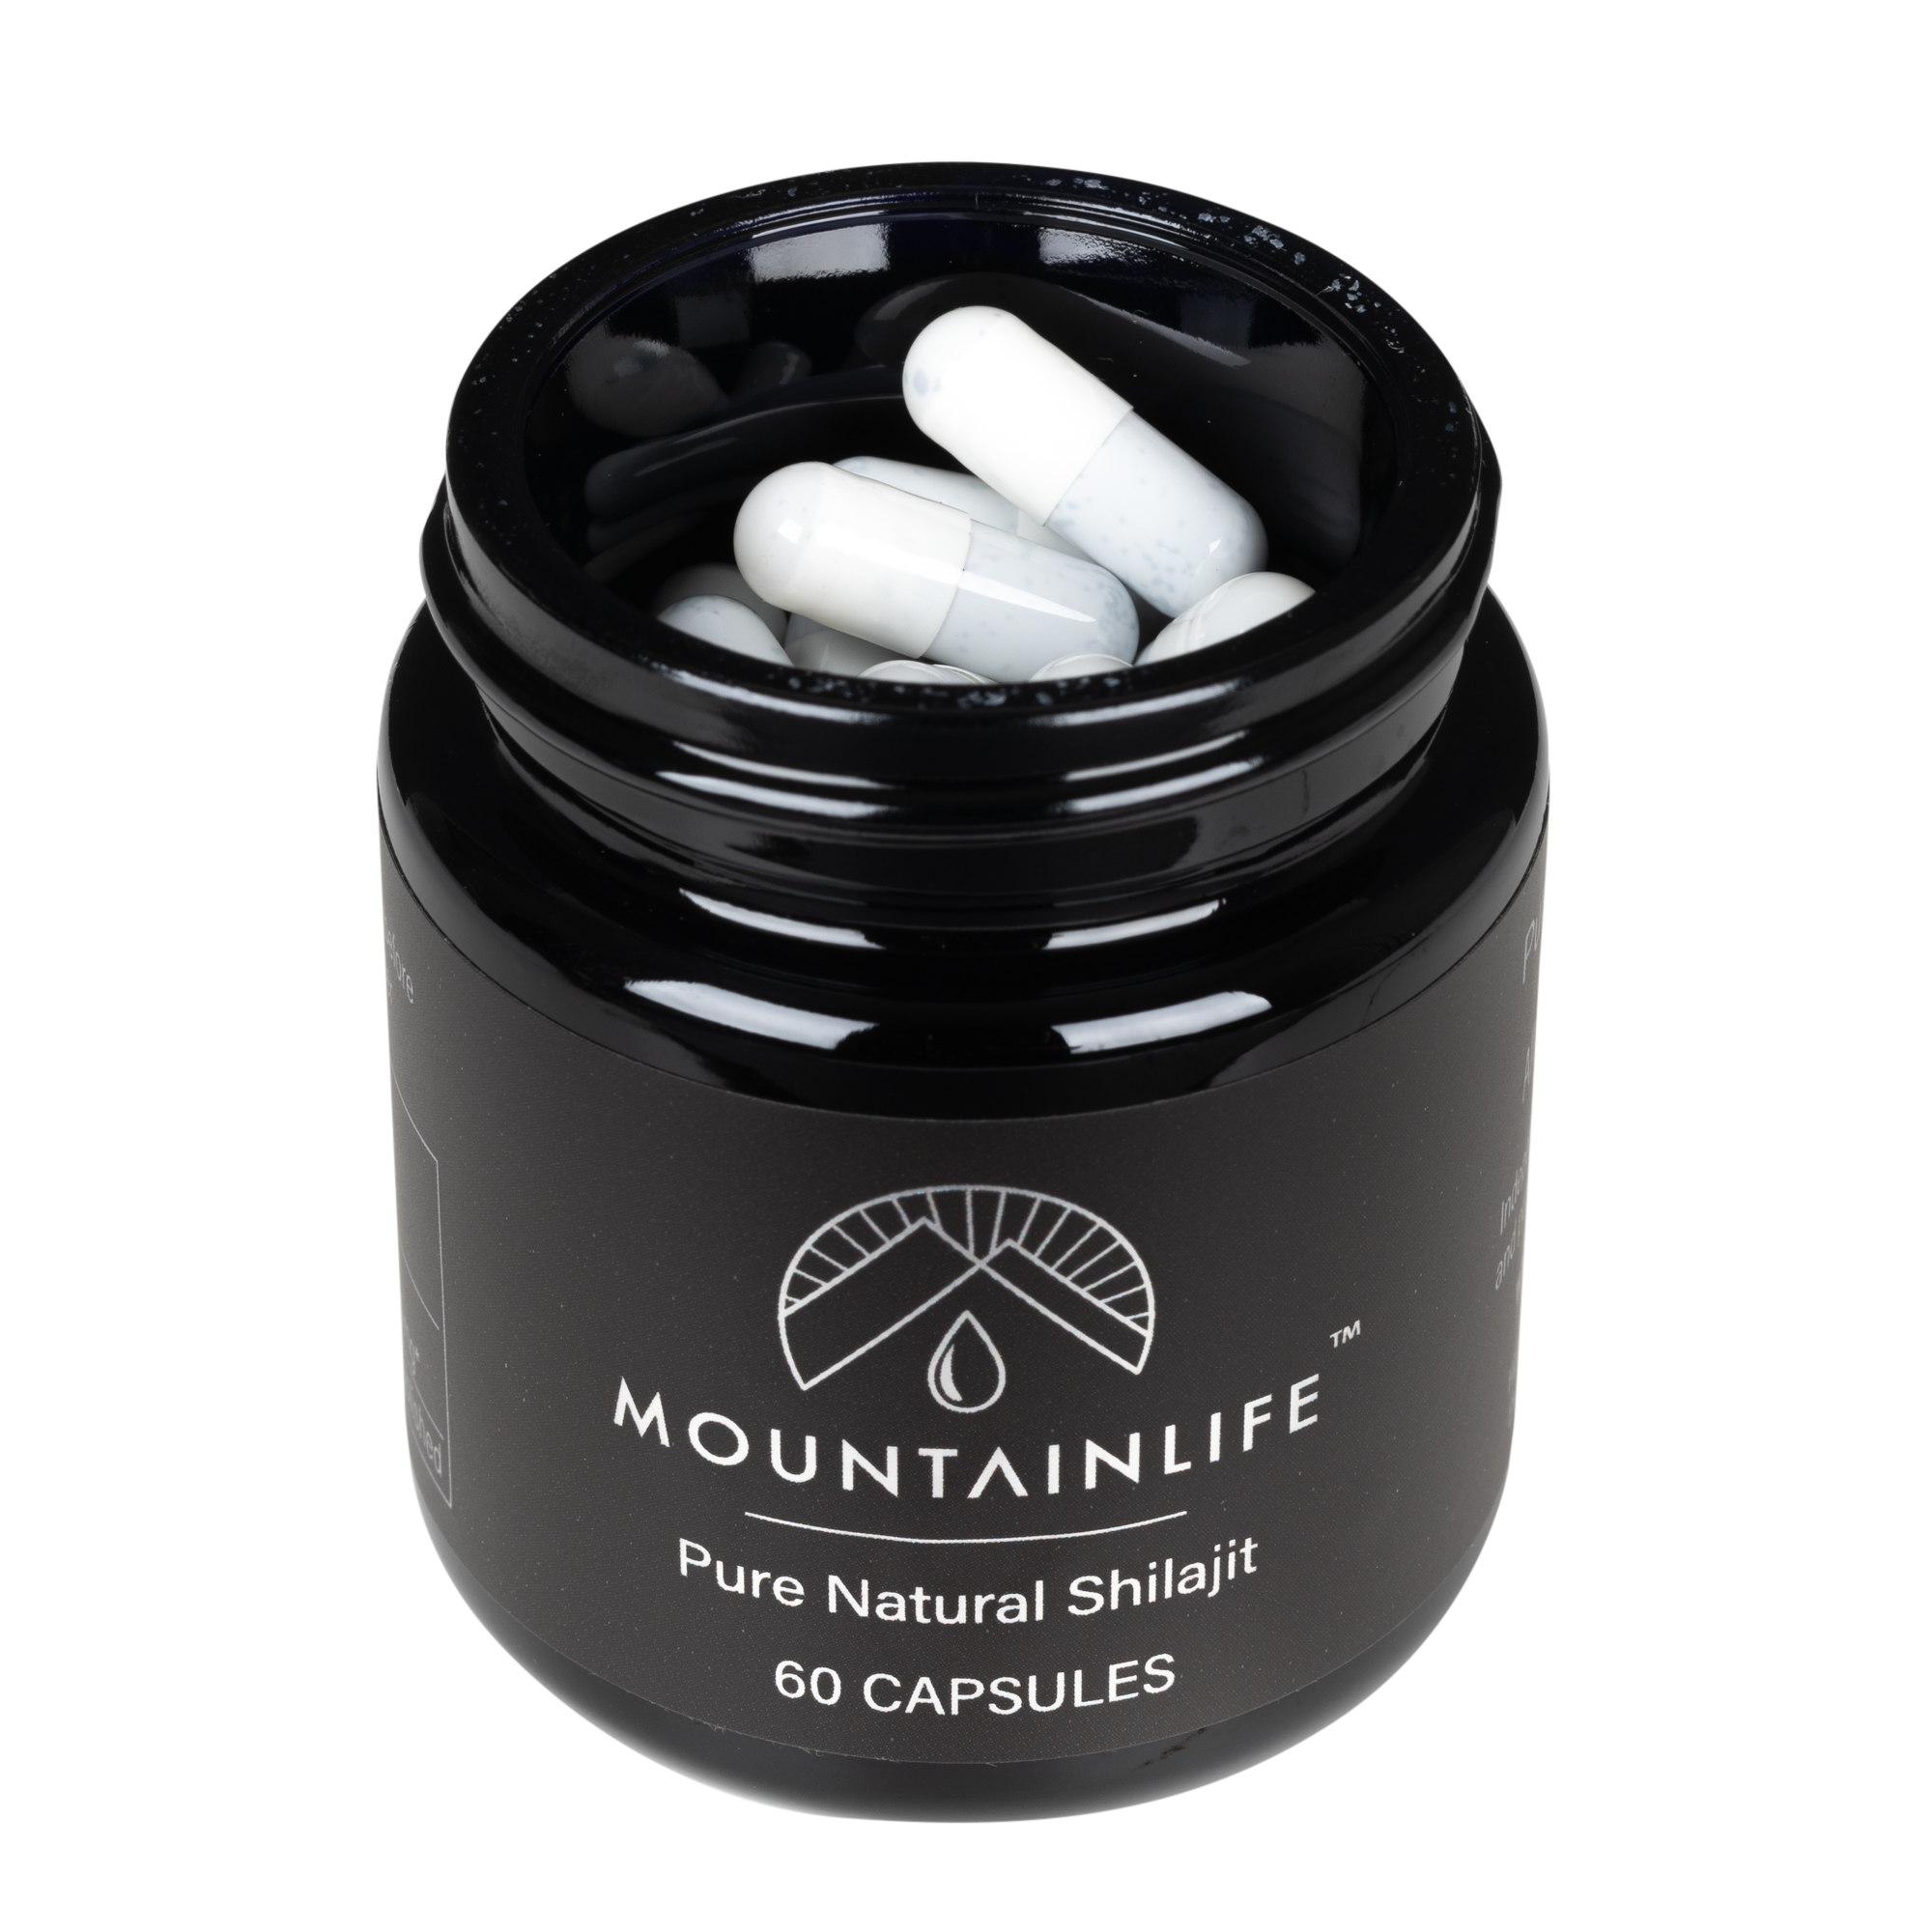 Mountainlife Natural Shilajit 60 capsules in UV glass jar showing the capsules inside